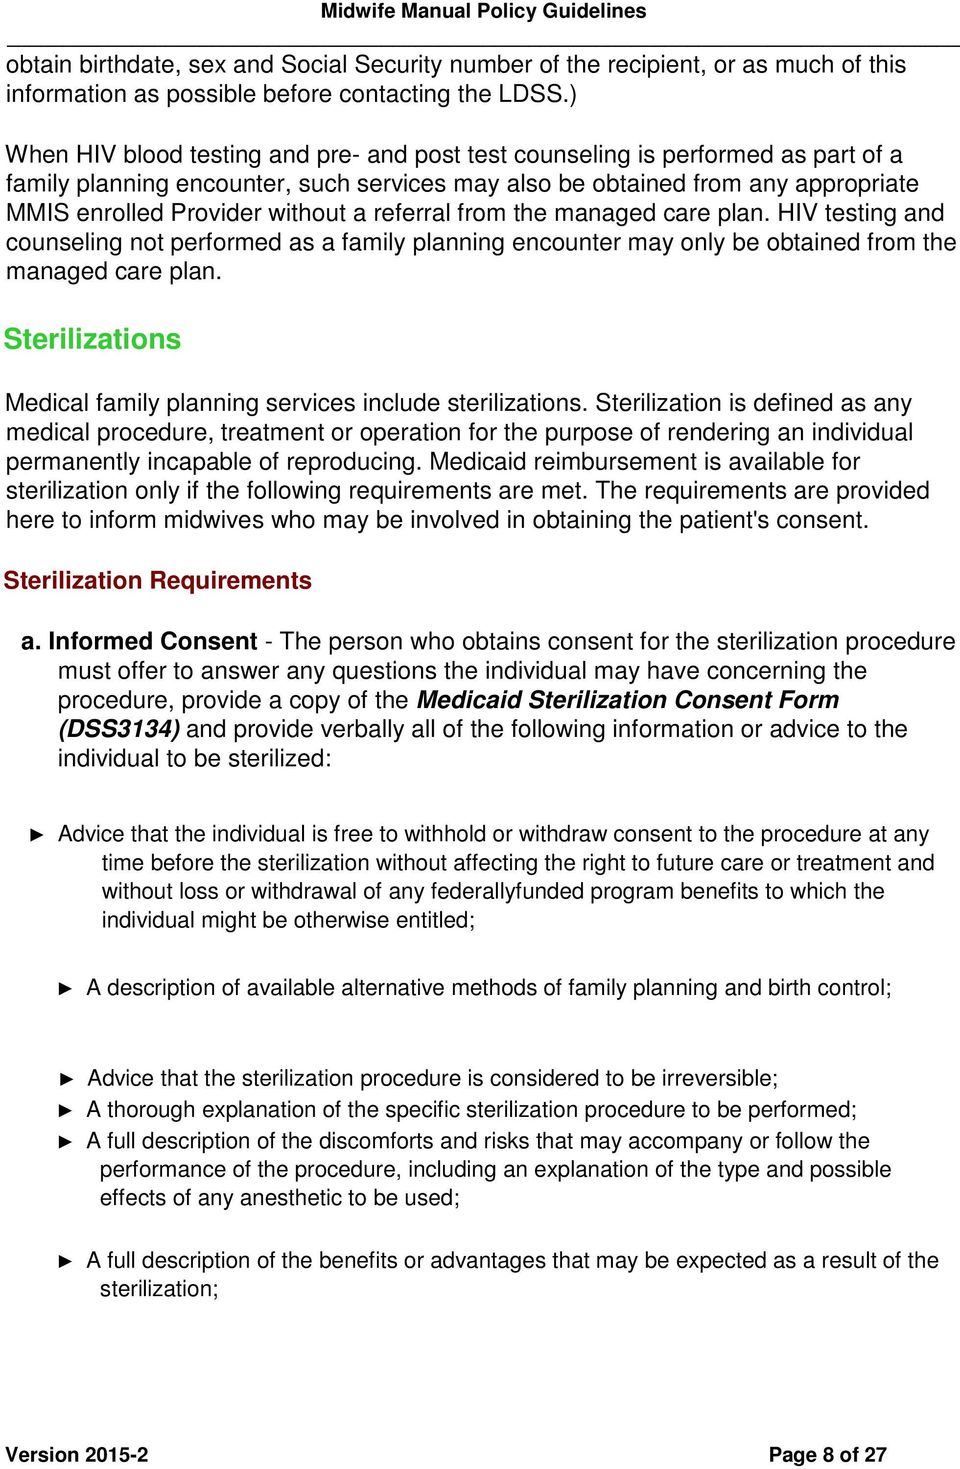 NEW YORK STATE MEDICAID PROGRAM MIDWIFE MANUAL POLICY